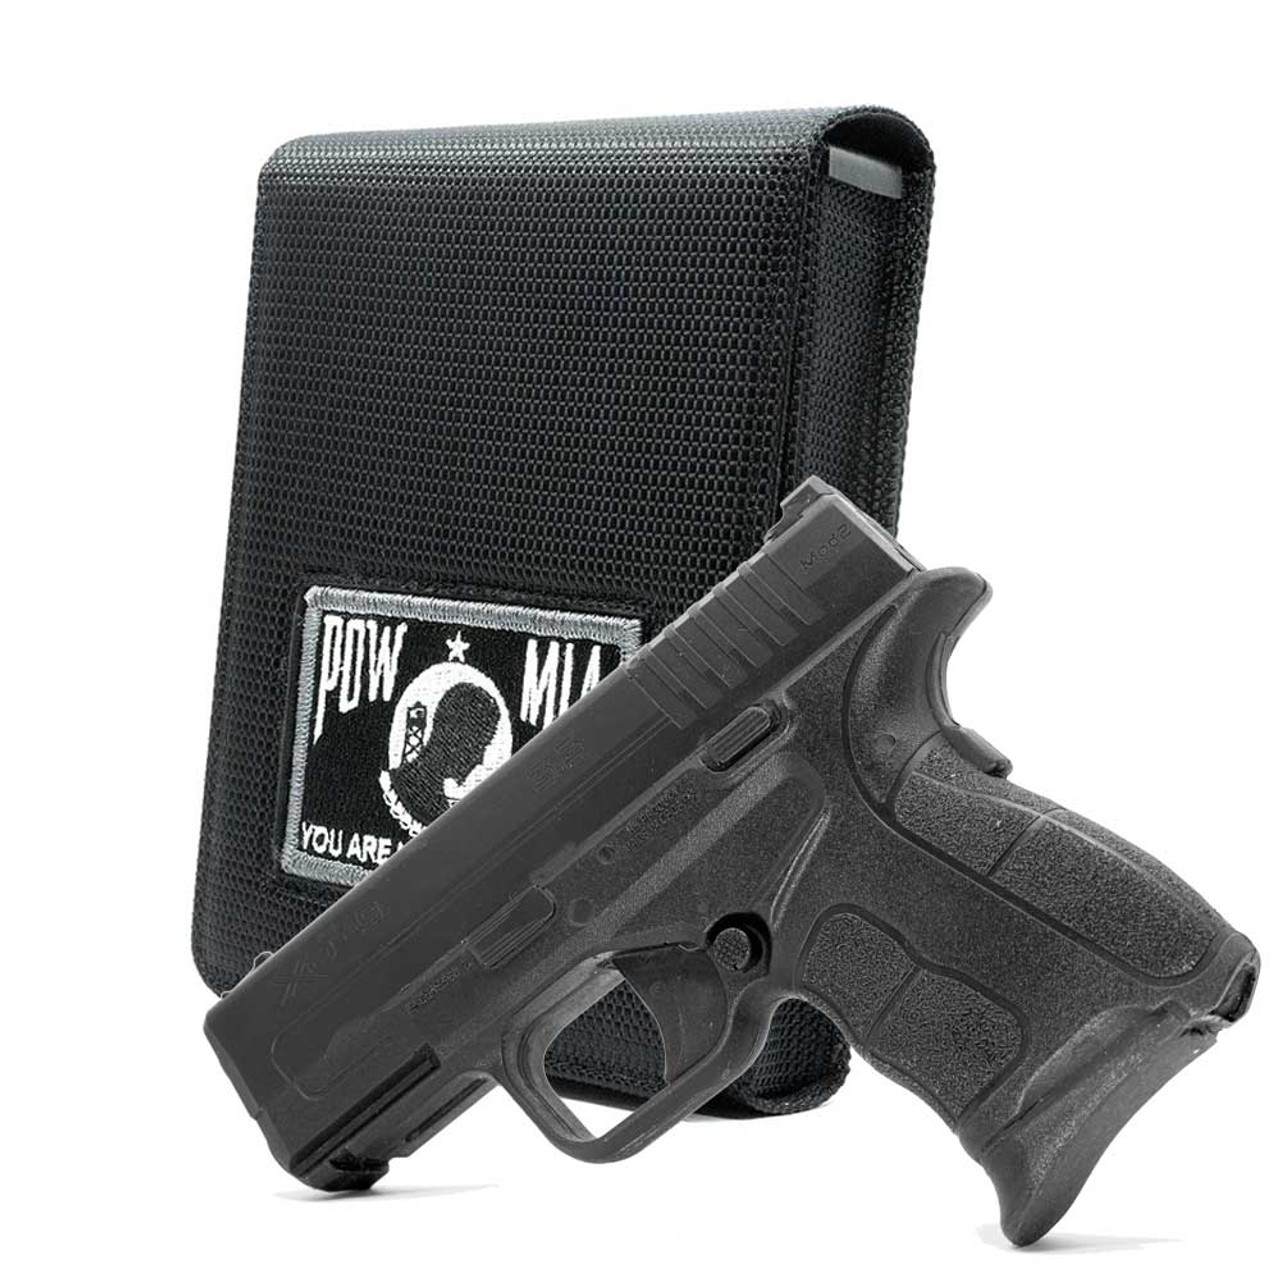 Springfield XDS-9 3.3 Holster